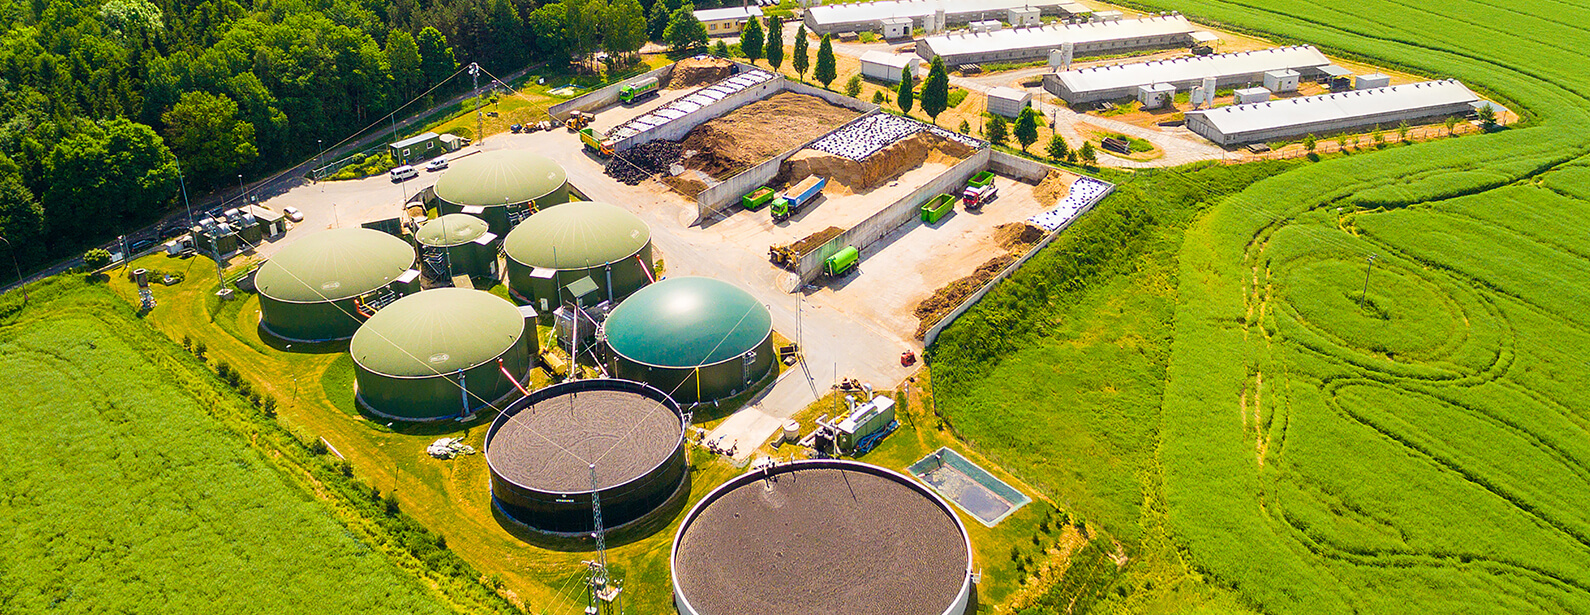 Biogas / Biomass Power Plant